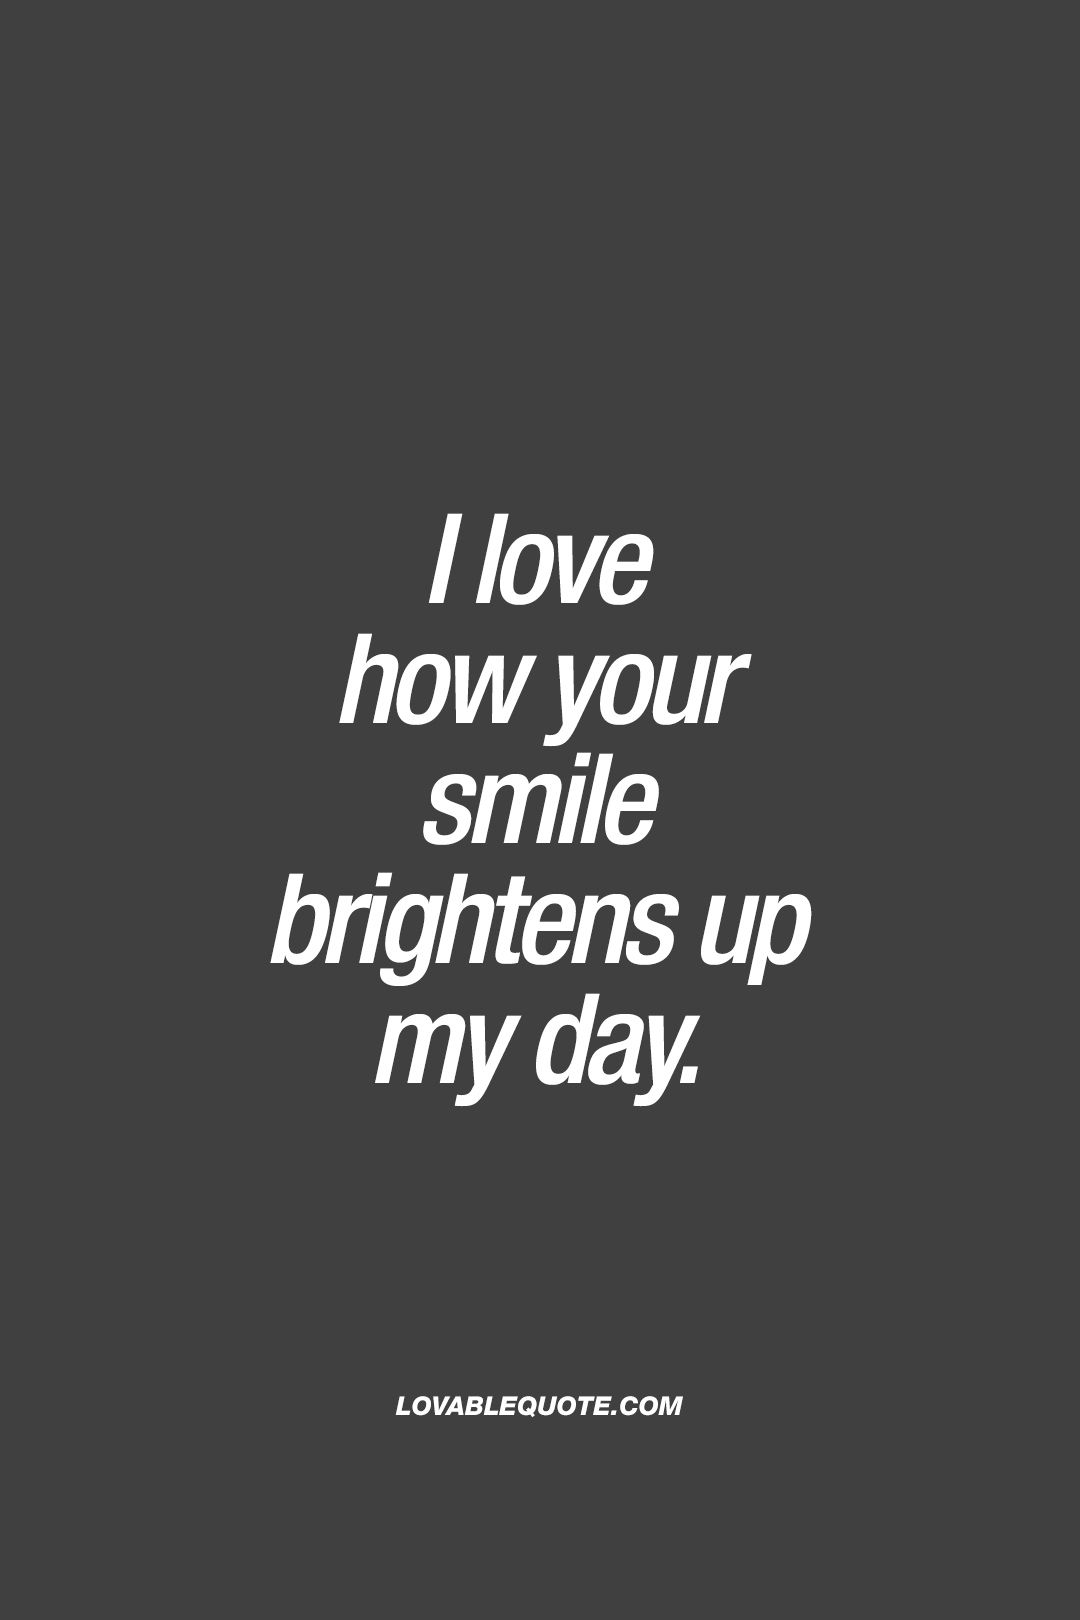 I Love How Your Smile Brightens Up My Day When His Or Her Smile Just Brightens Up Your En Love Yourself Quotes Quotes For Your Girlfriend Girlfriend Quotes